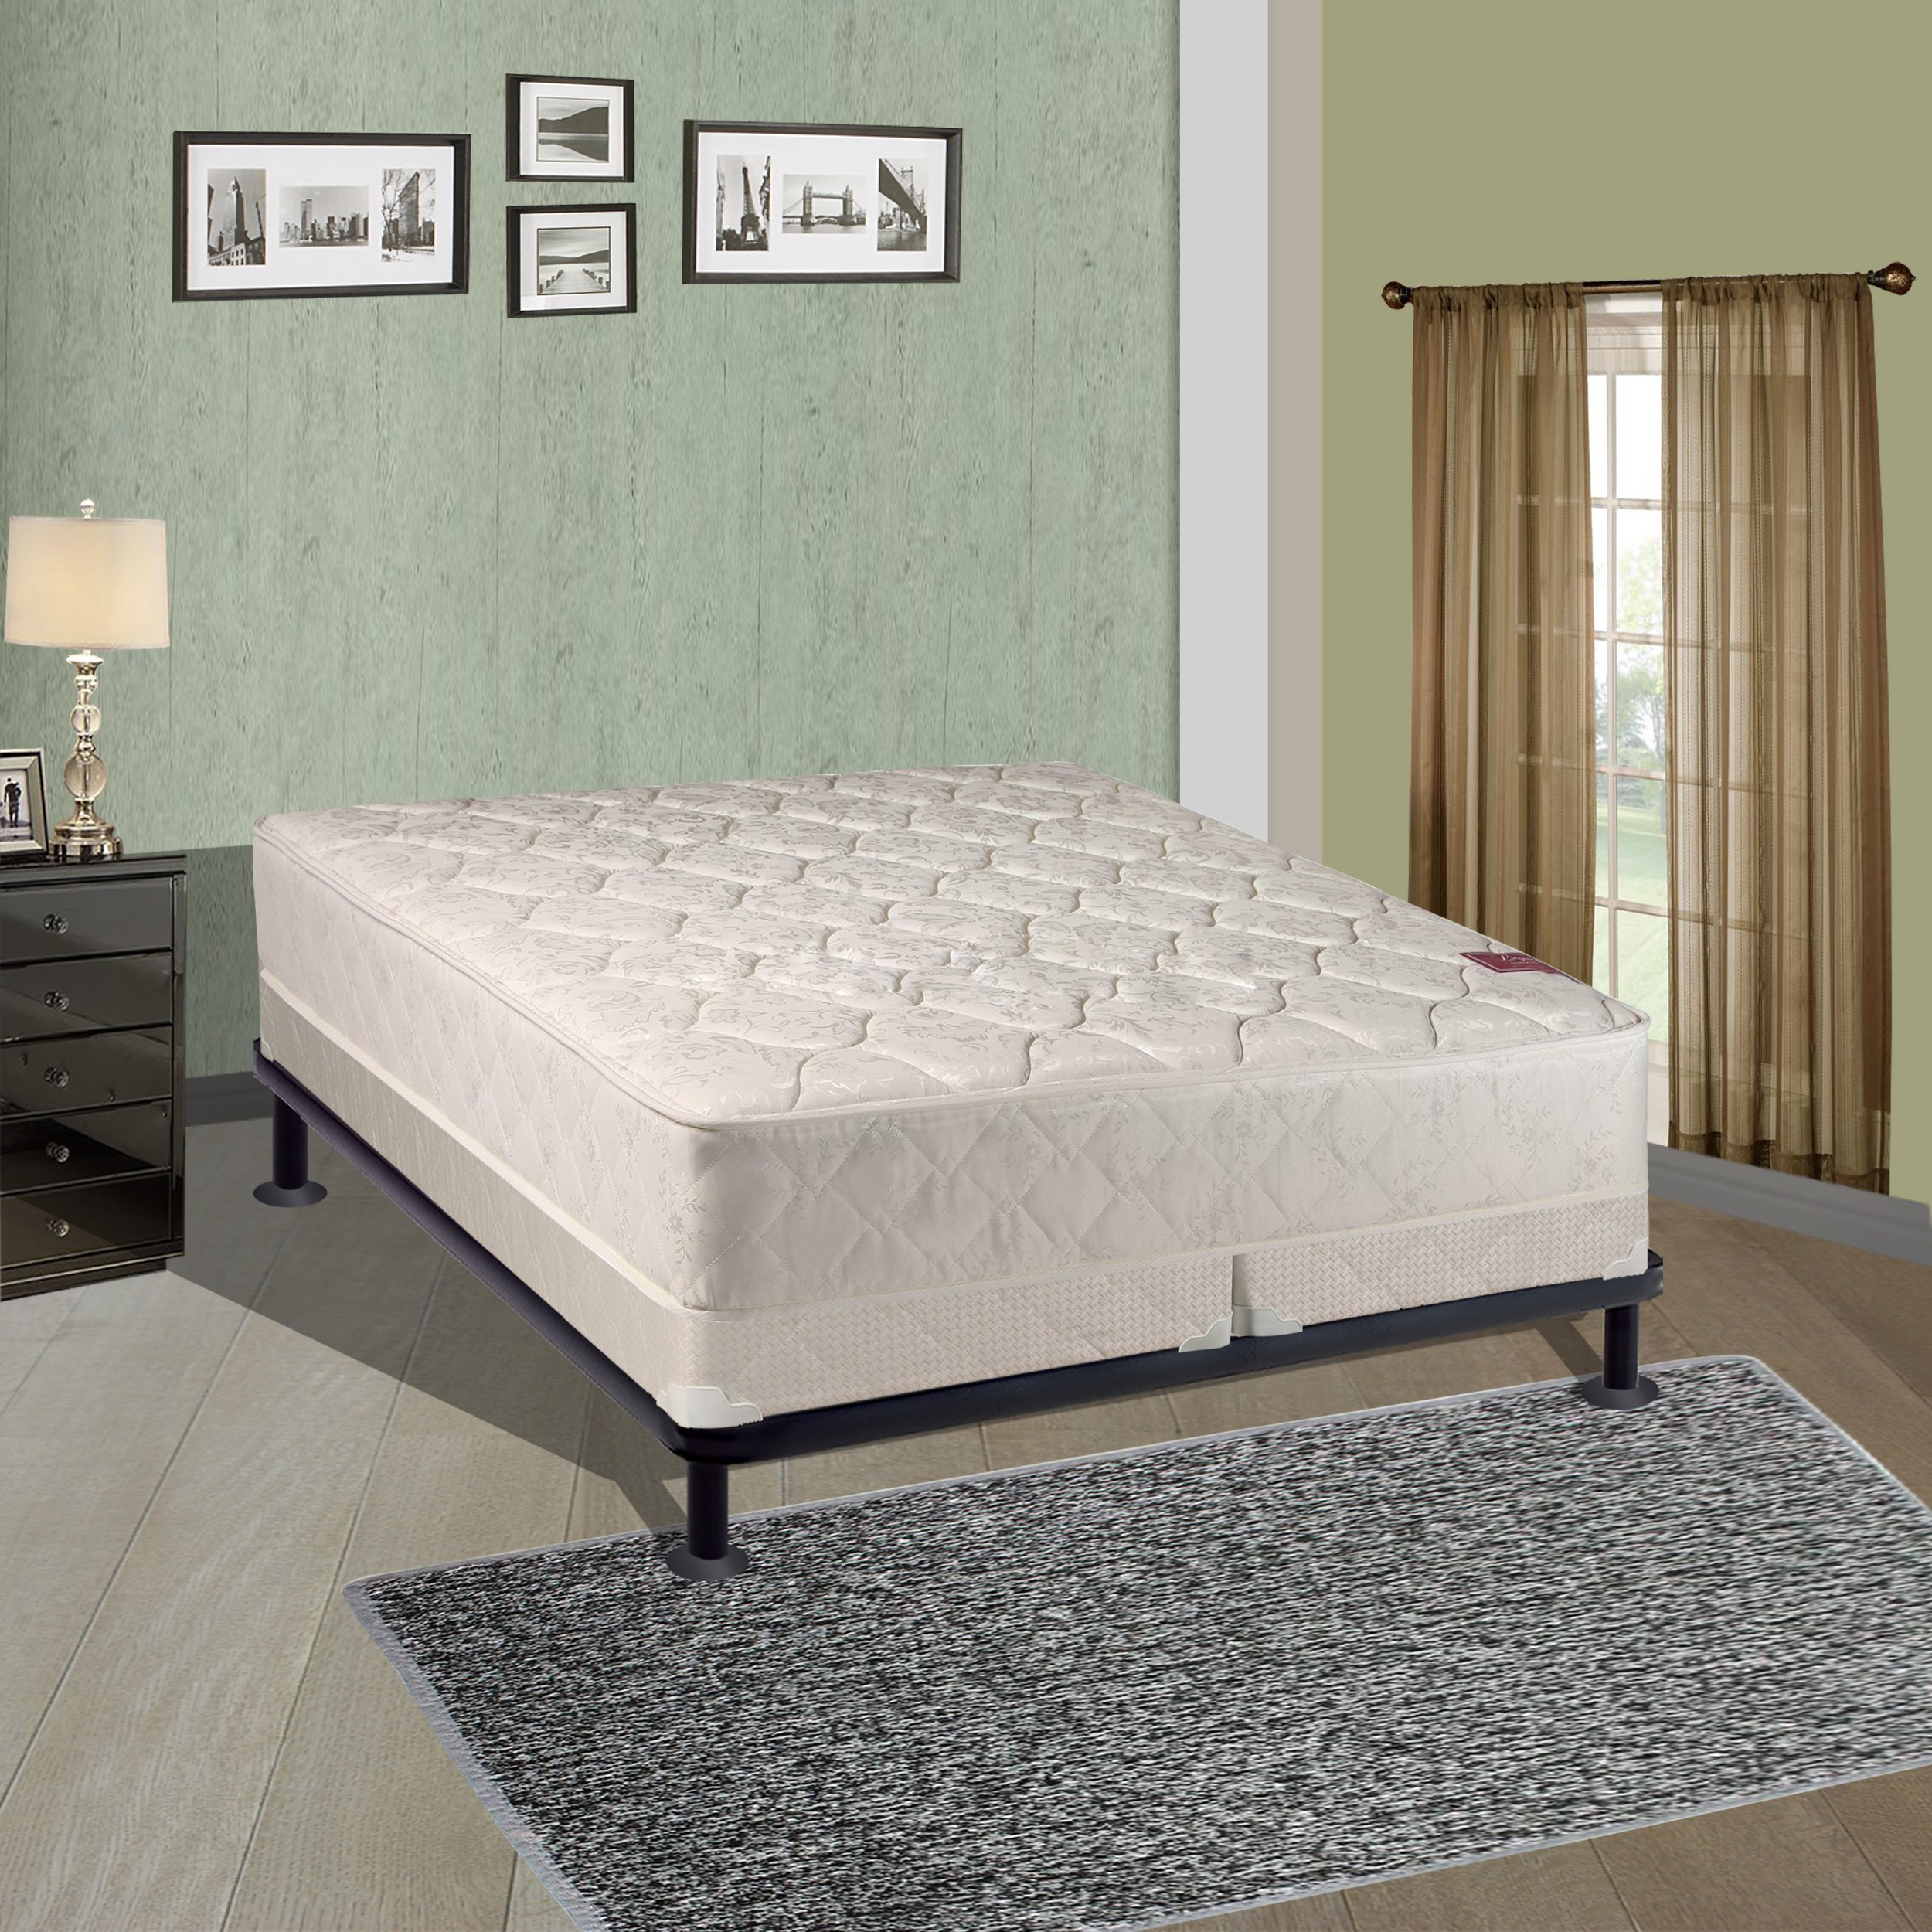 Spring Solution Mattress, 9-Inch Fully Assembled Orthopedic Back Support Full Mattress and 4-inch Split Box Spring With Bed Frame,Hollywood Collection